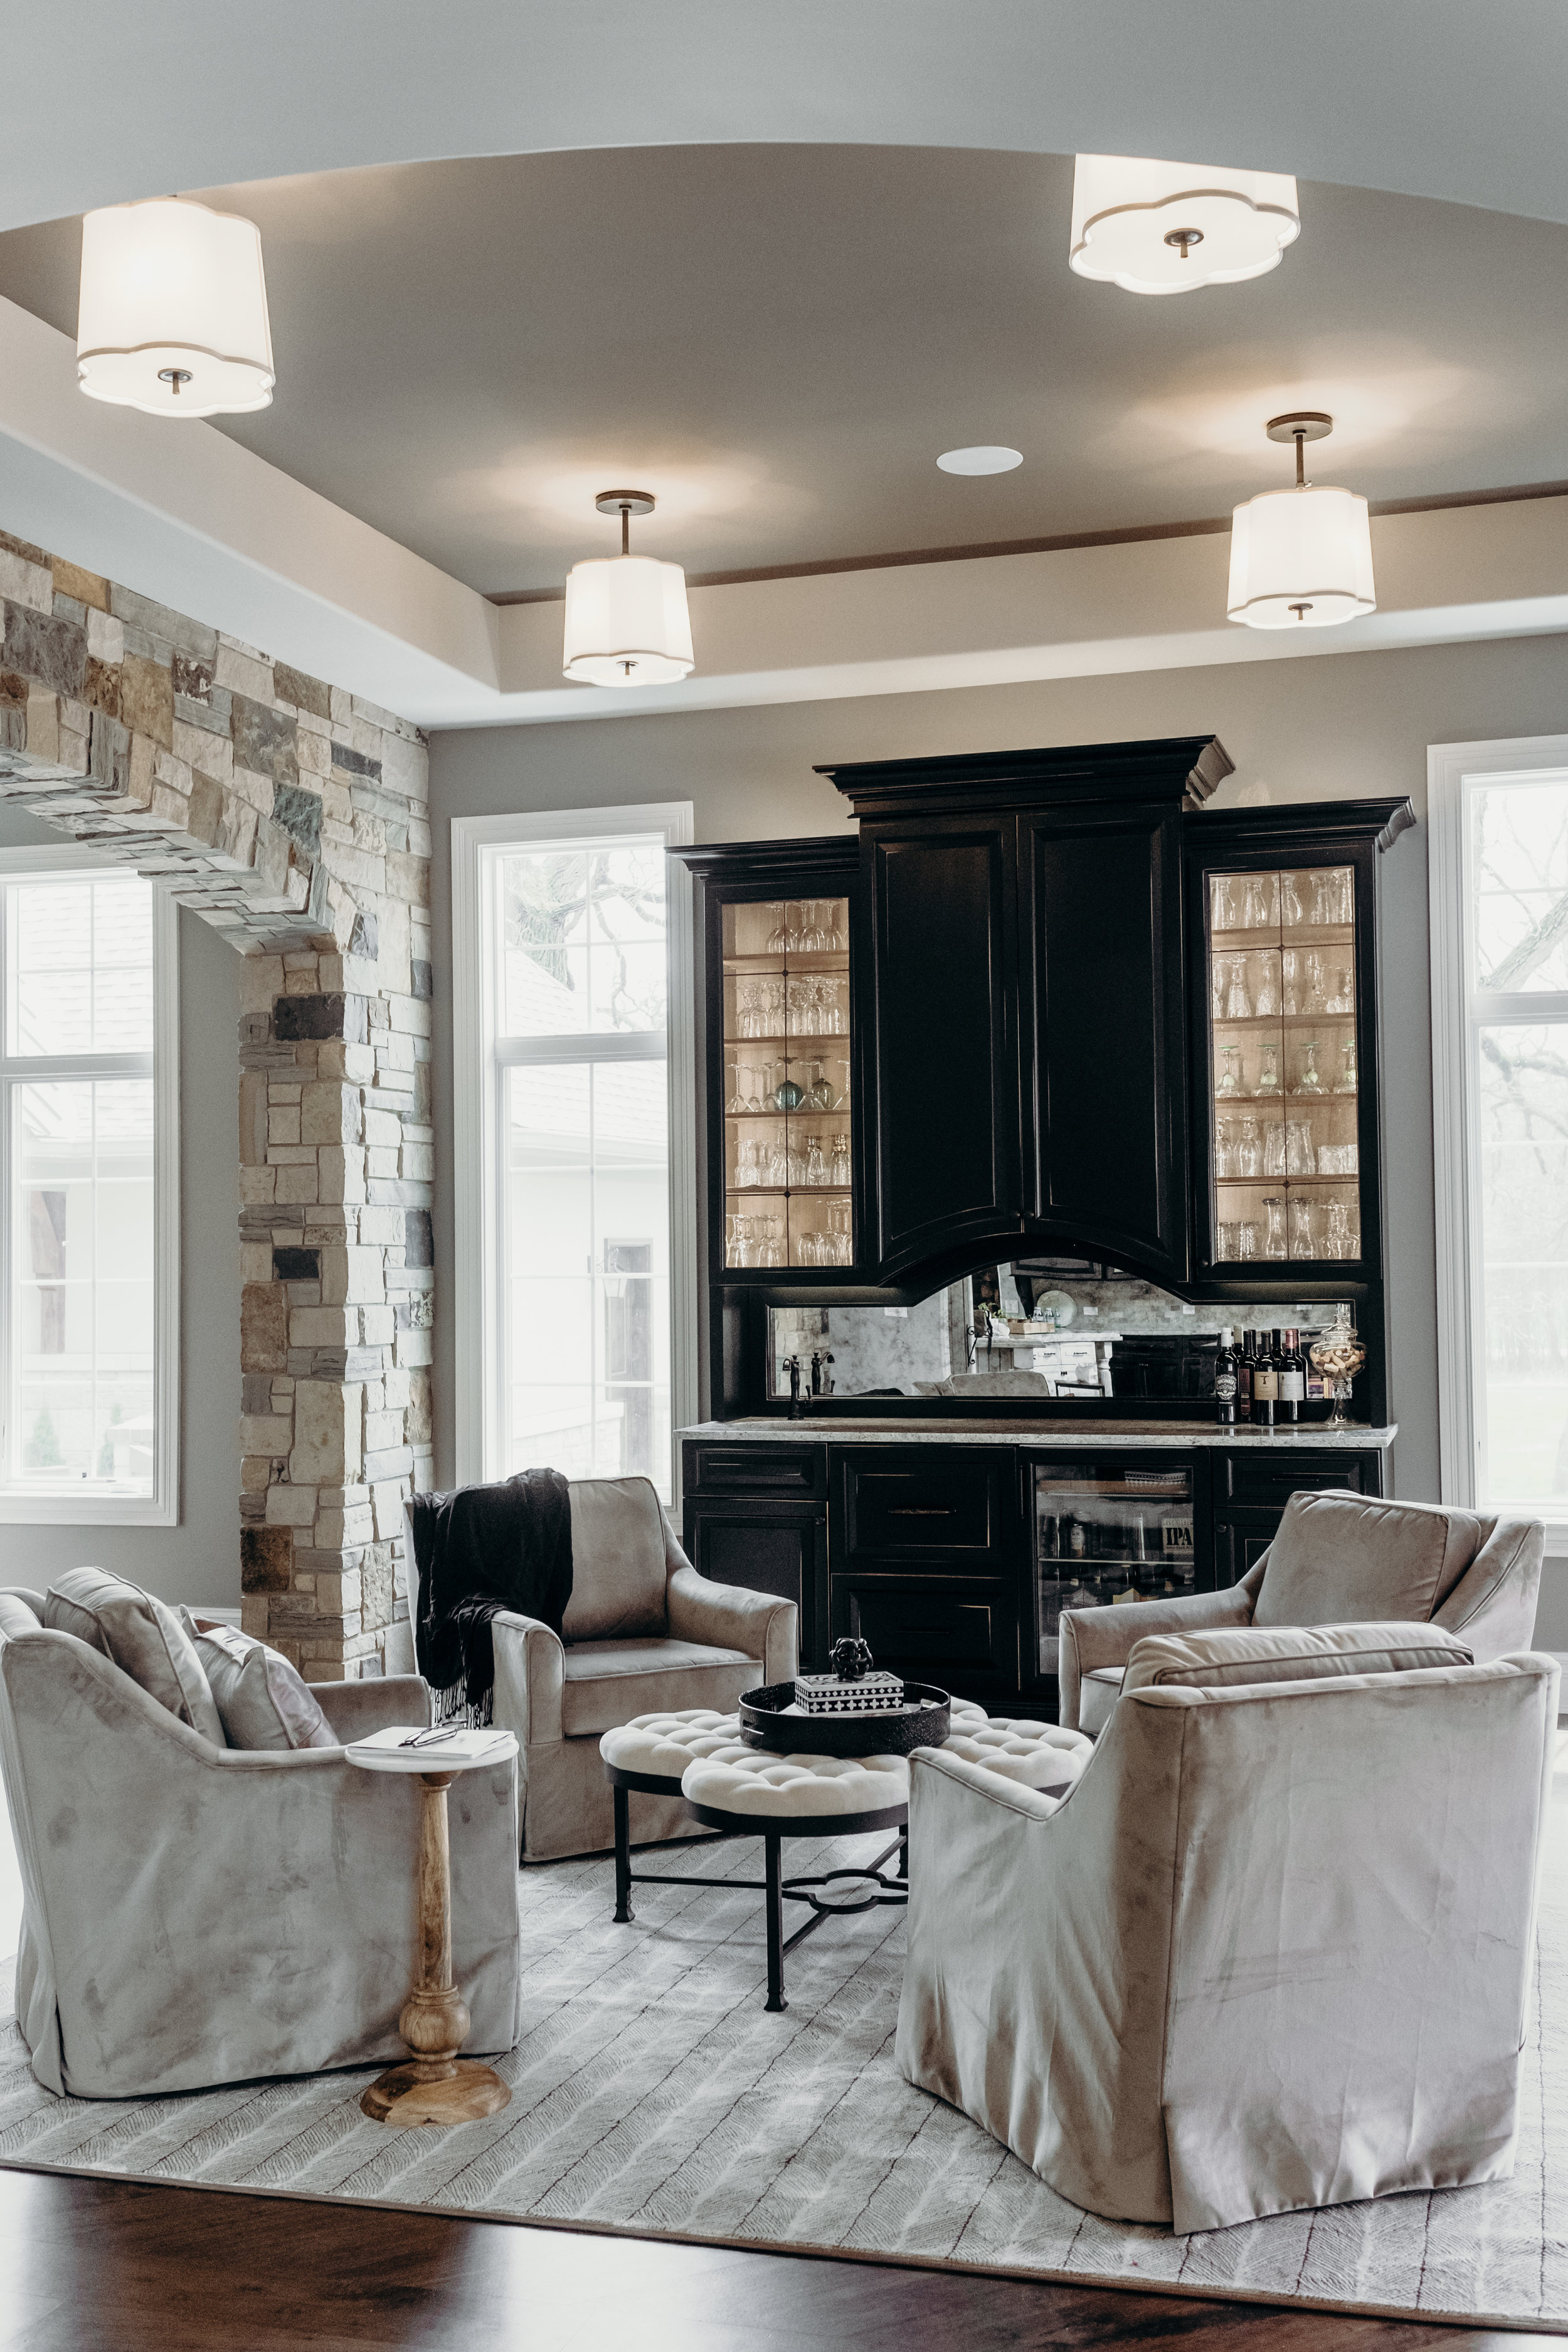 Lounge room with velvet swivel chairs, dark cabinets, and semi-flush mount lighting.